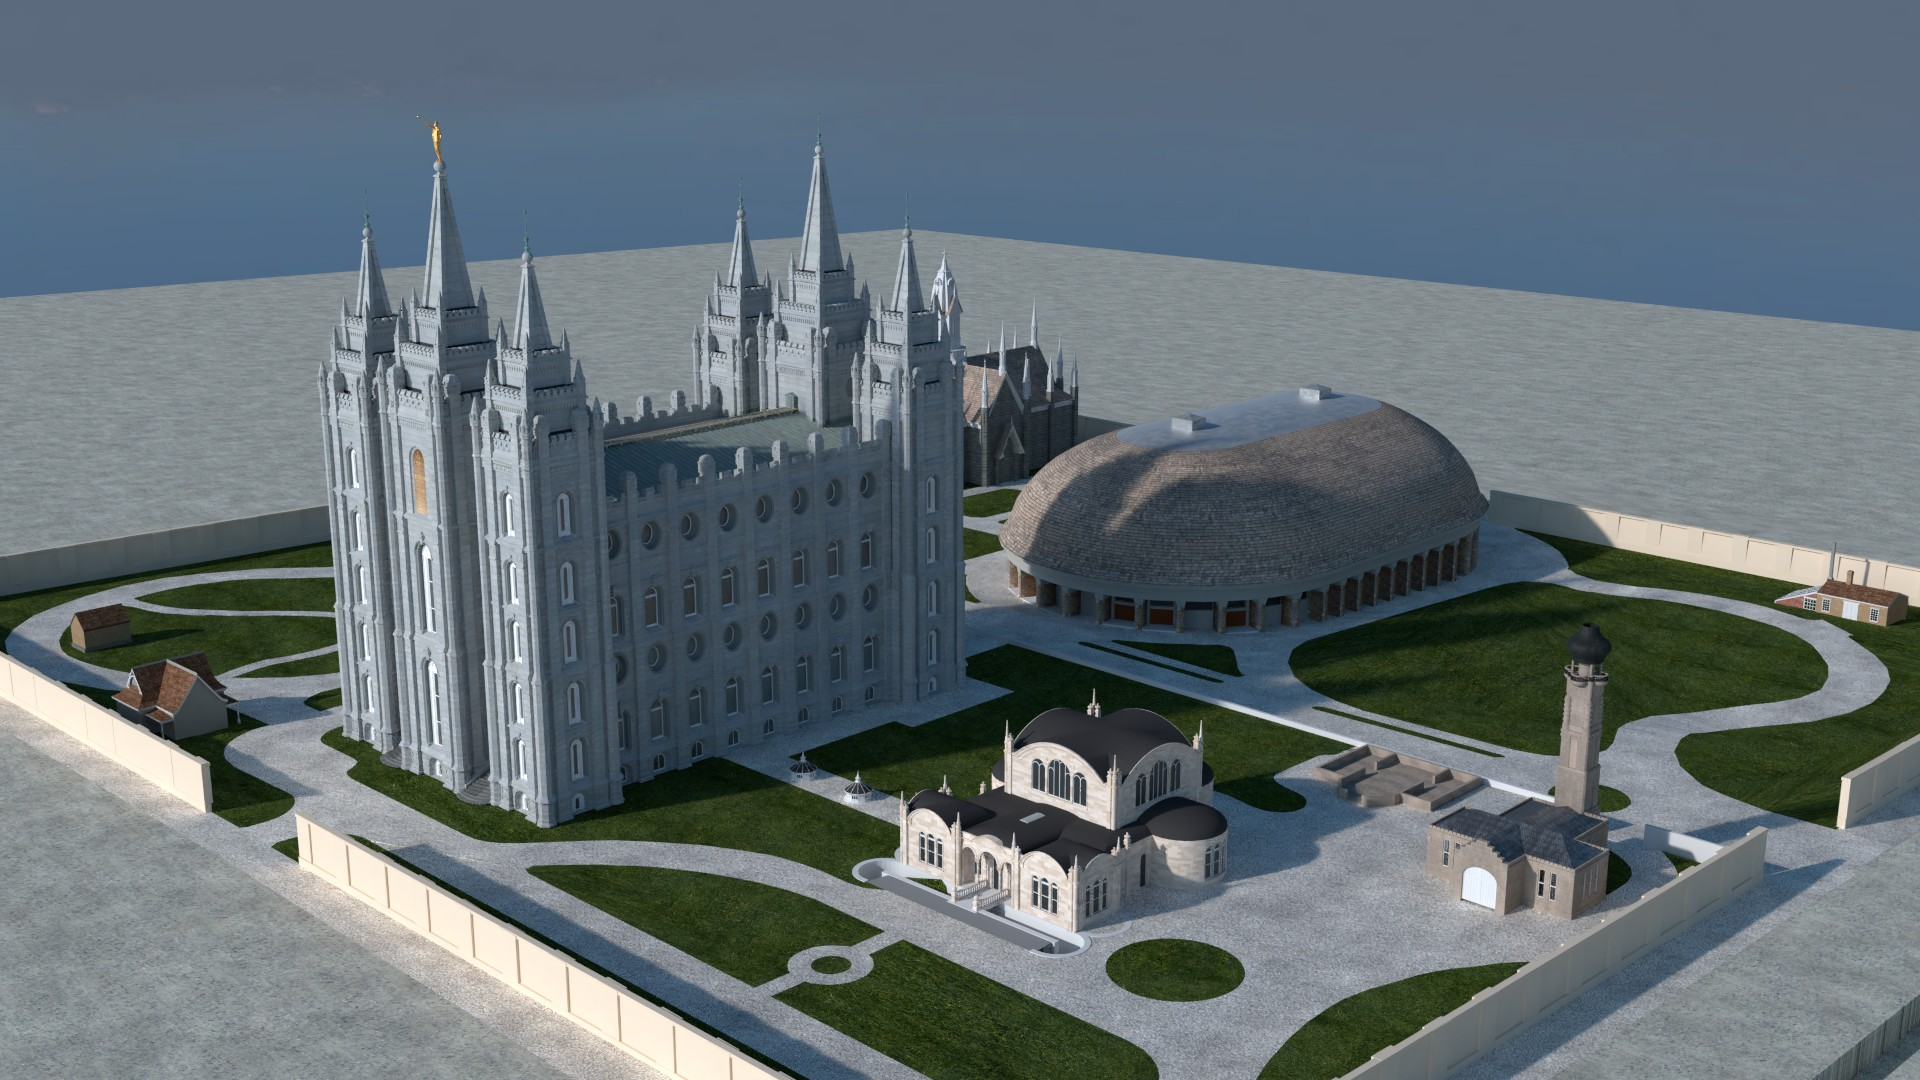 Salt Lake Temple image